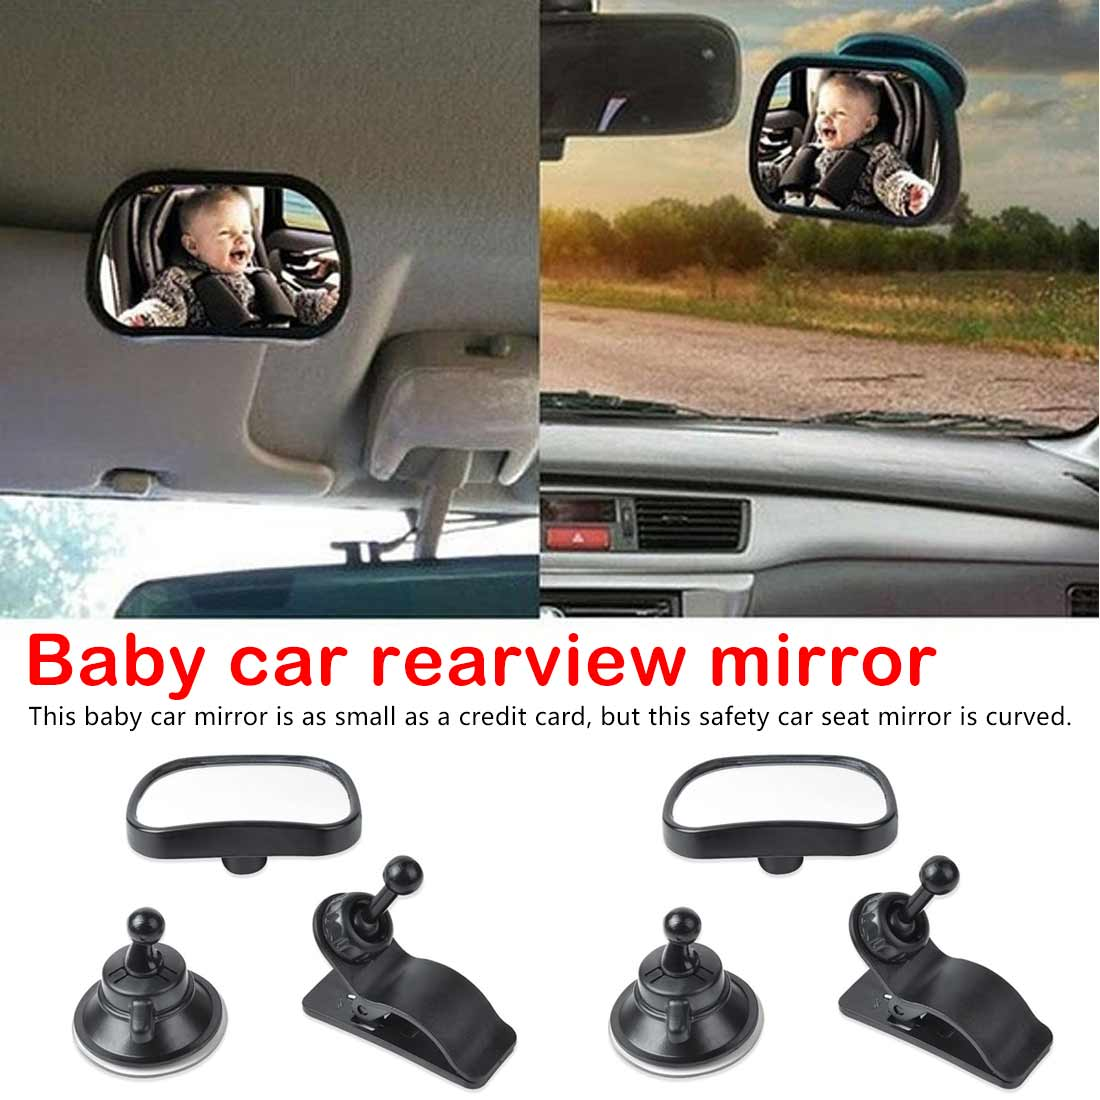 Shatter-proof Safety New Sucktion Cup on Windshield Baby Car Mirror Rear Facing View Infant//Toddler In Back Seat